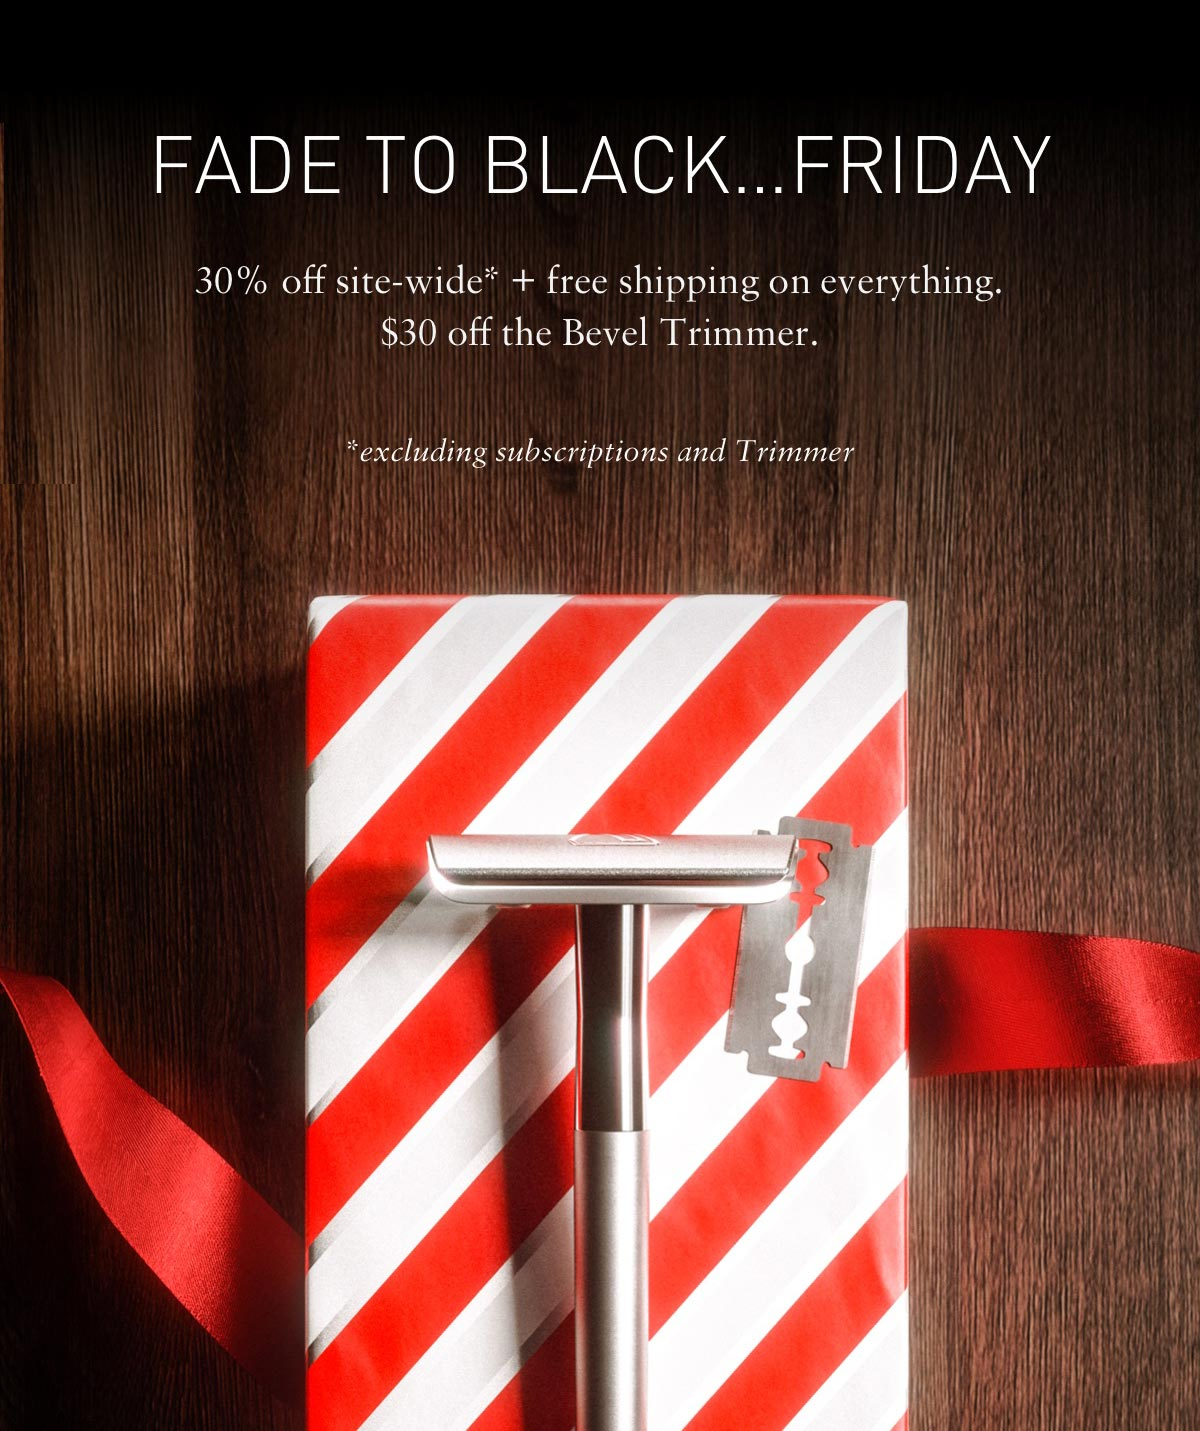 FADE TO BLACK...FRIDAY. 30% off site-wide* + free shipping on everything.